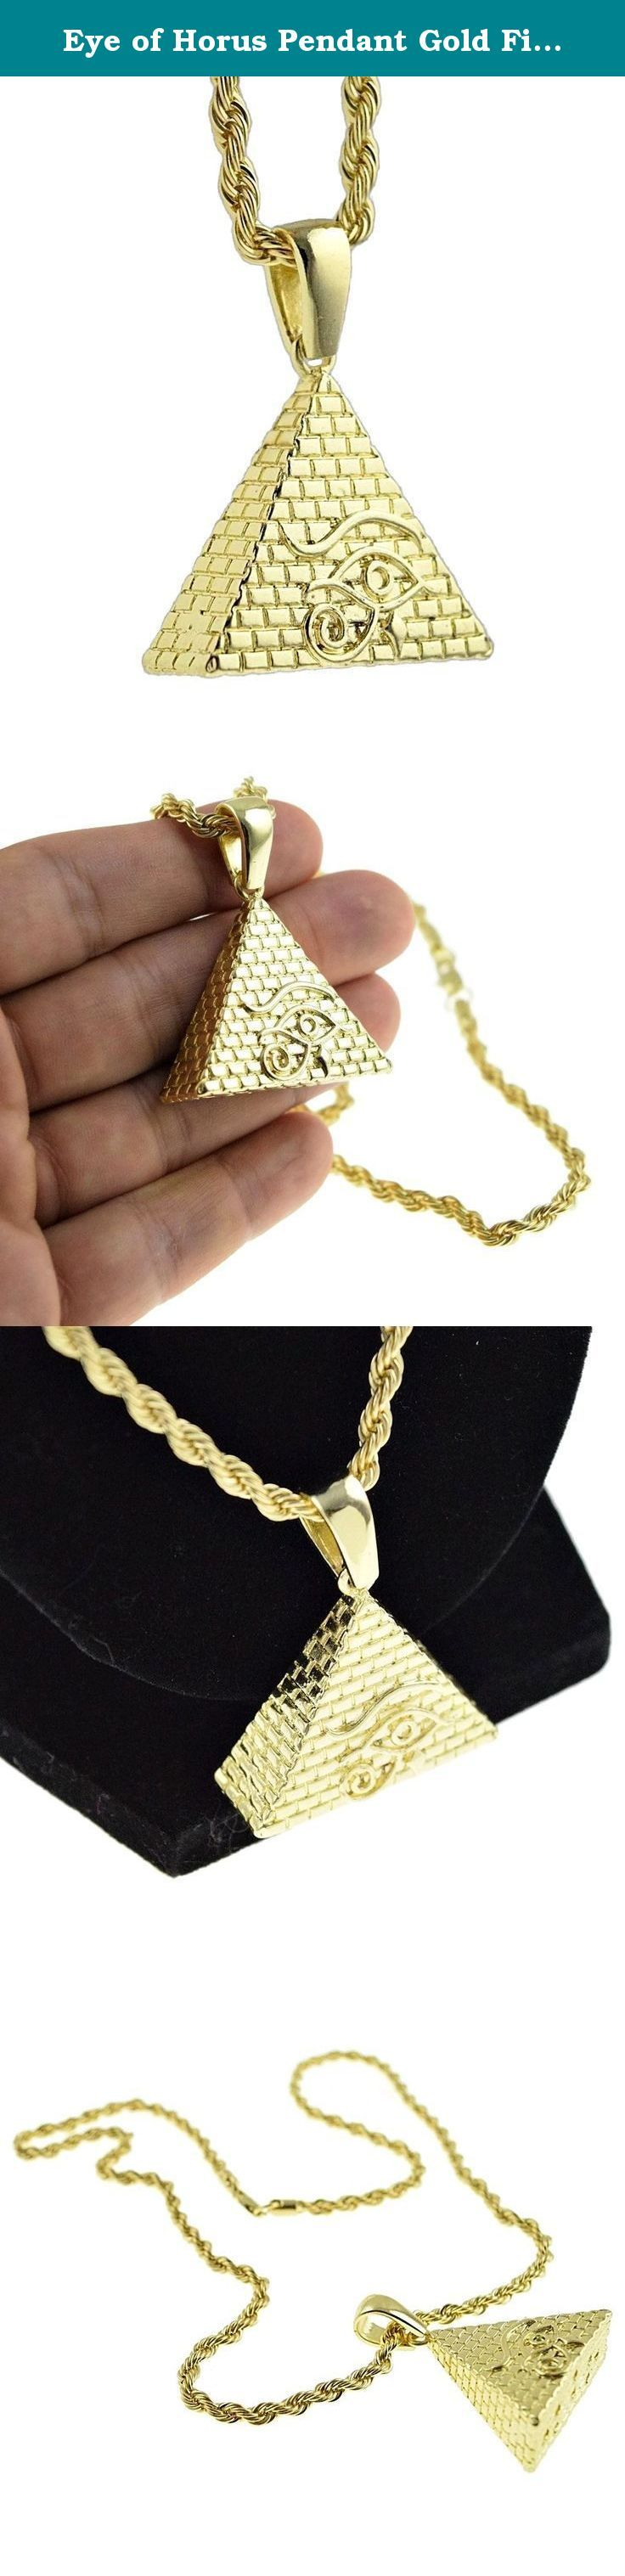 """Eye of Horus Pendant Gold Finish Egyptian Pyramid Charm 24 Inch Rope Chain Hip Hop Necklace. Express your bold style with this Pyramid charm , 24"""" rope chain pendant. Gorgeous gold finish over high quality metal, for a Eye of Horus Pyramid chain that is a real show stopper."""